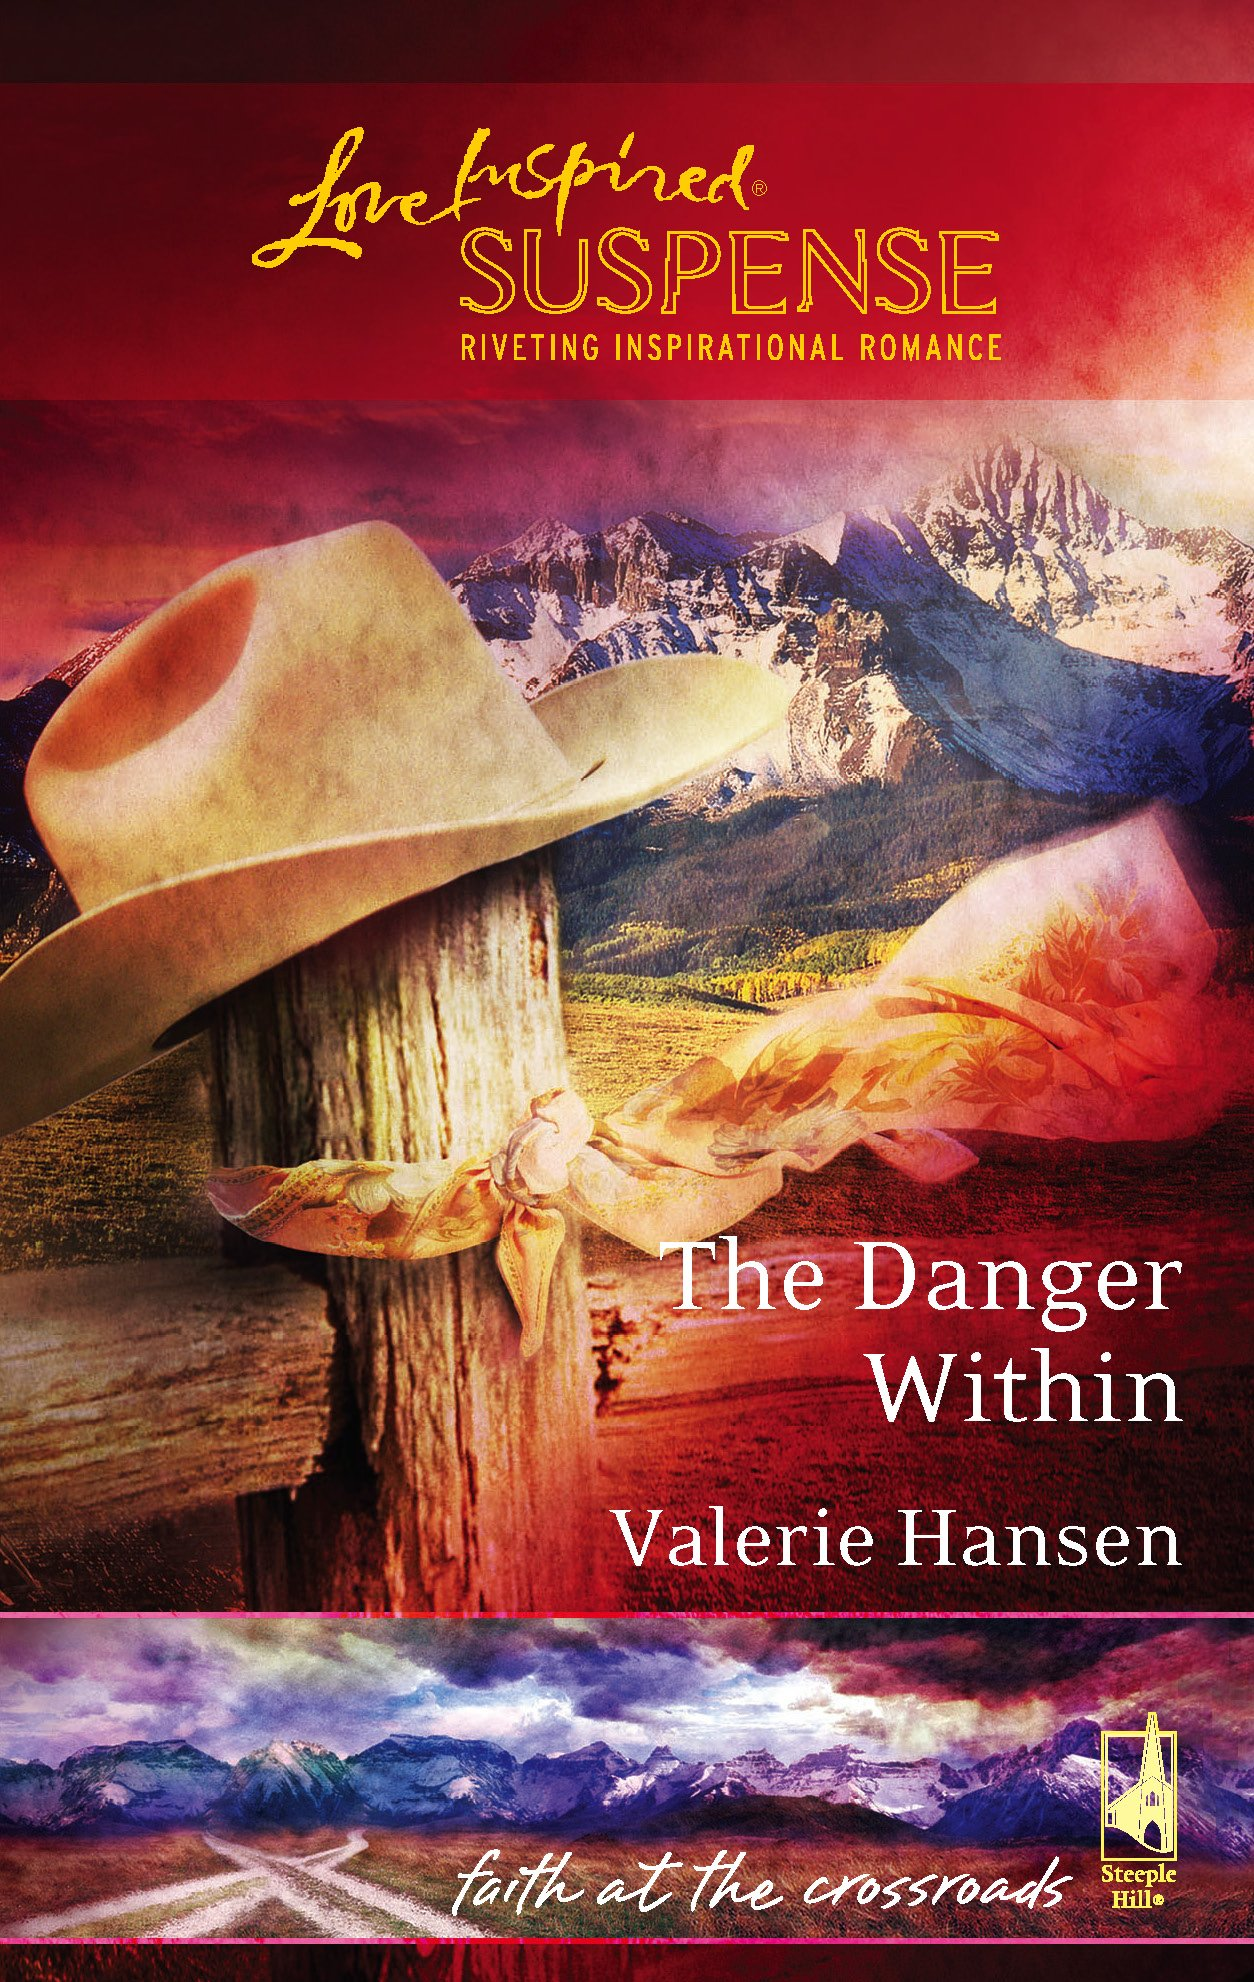 The Danger Within (Faith at the Crossroads, Book 2) (Steeple Hill Love Inspired Suspense #15) pdf epub